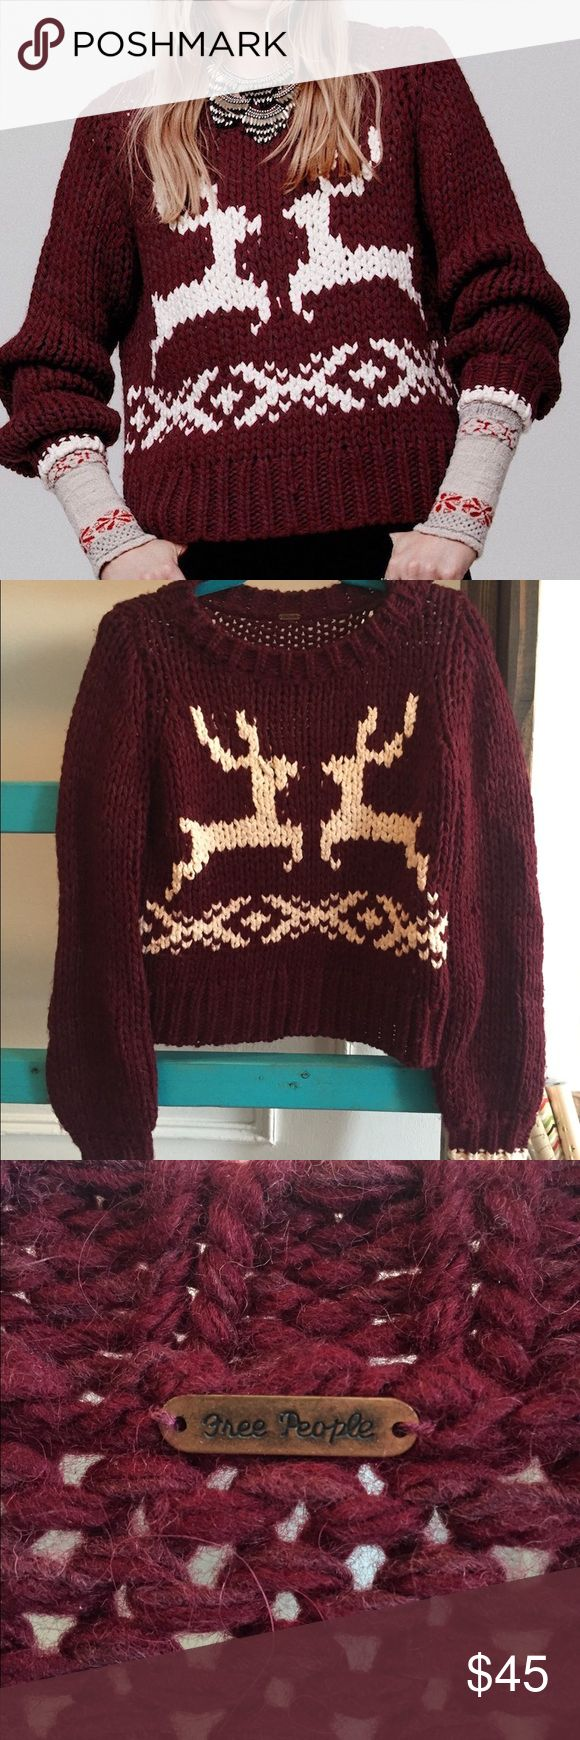 Free People Dancer and Prancer Sweater Reindeer Adorable reindeer sweater from Free People. Super chunky and soft. Amazing holiday pattern!! Size small fits true to fp sizing in a boxy oversized way. Great condition, only worn once! Originally $168!! Free People Sweaters Crew & Scoop Necks